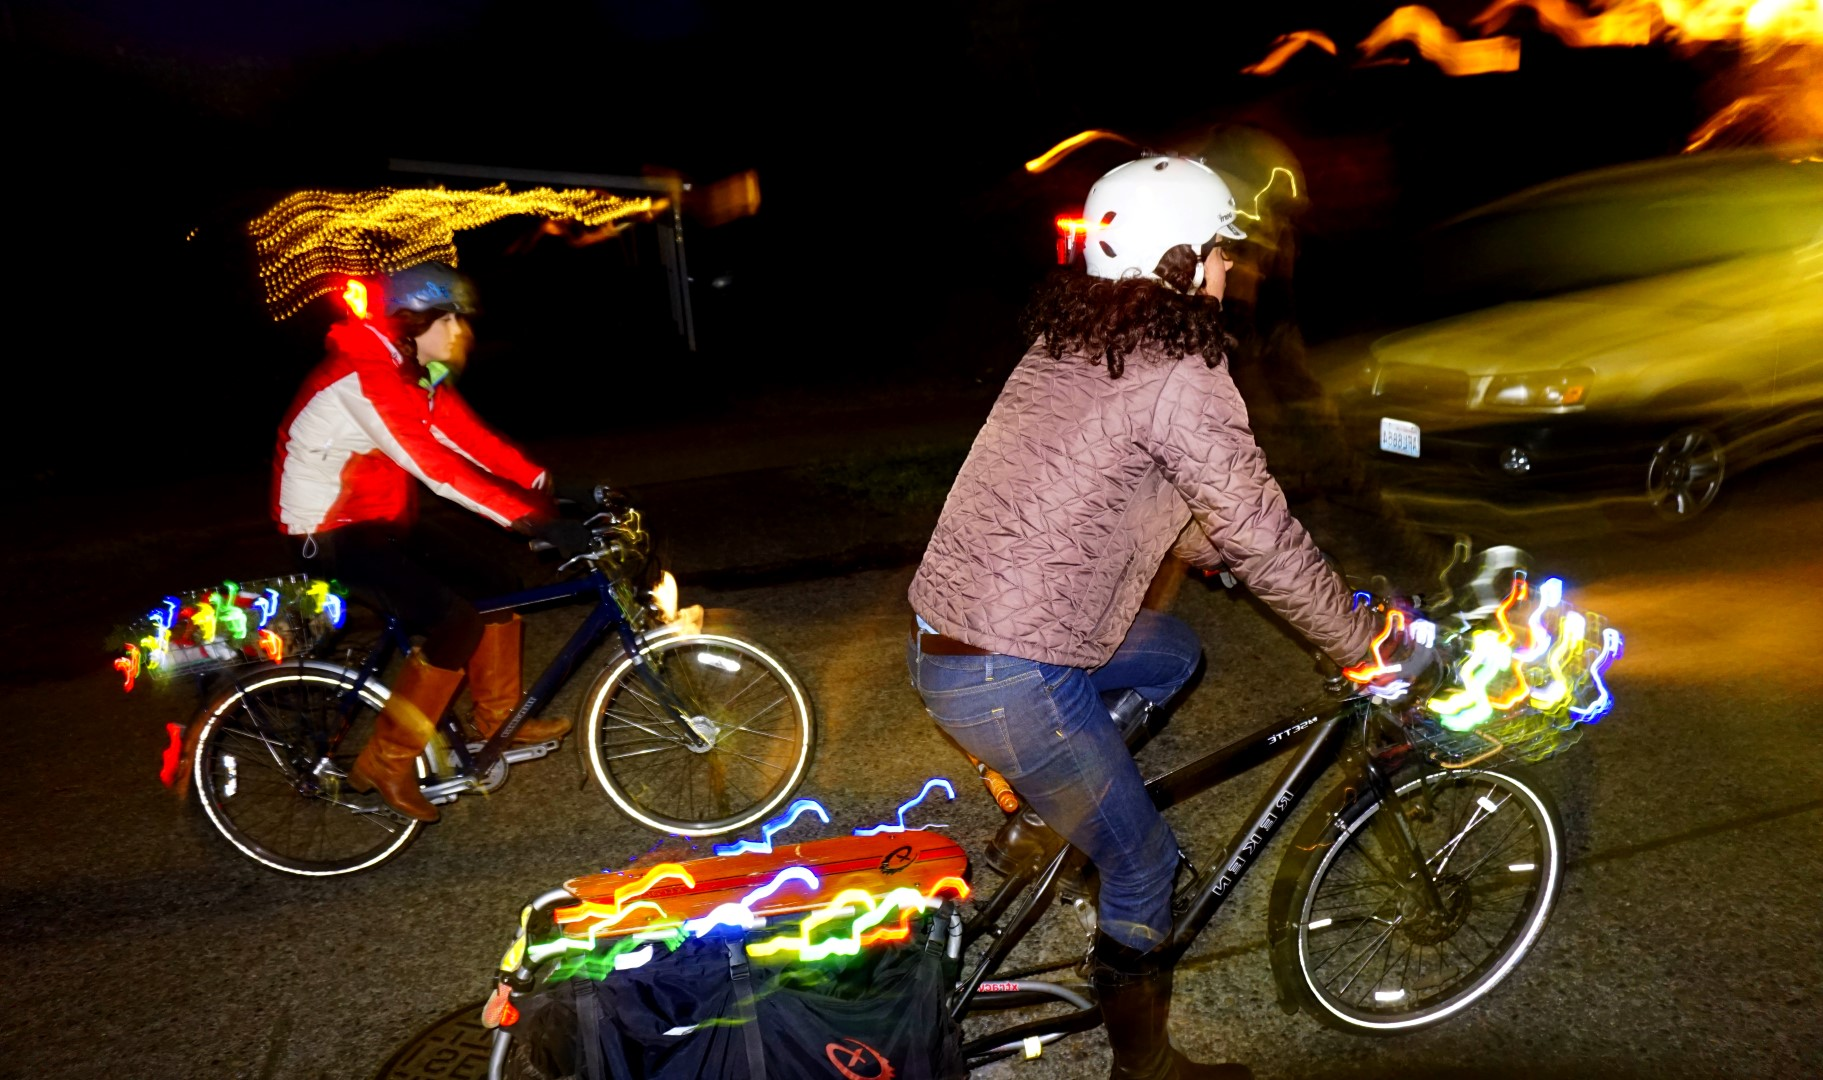 Light Up Your Bike With Battery Powered Holiday Lights Car Free Days